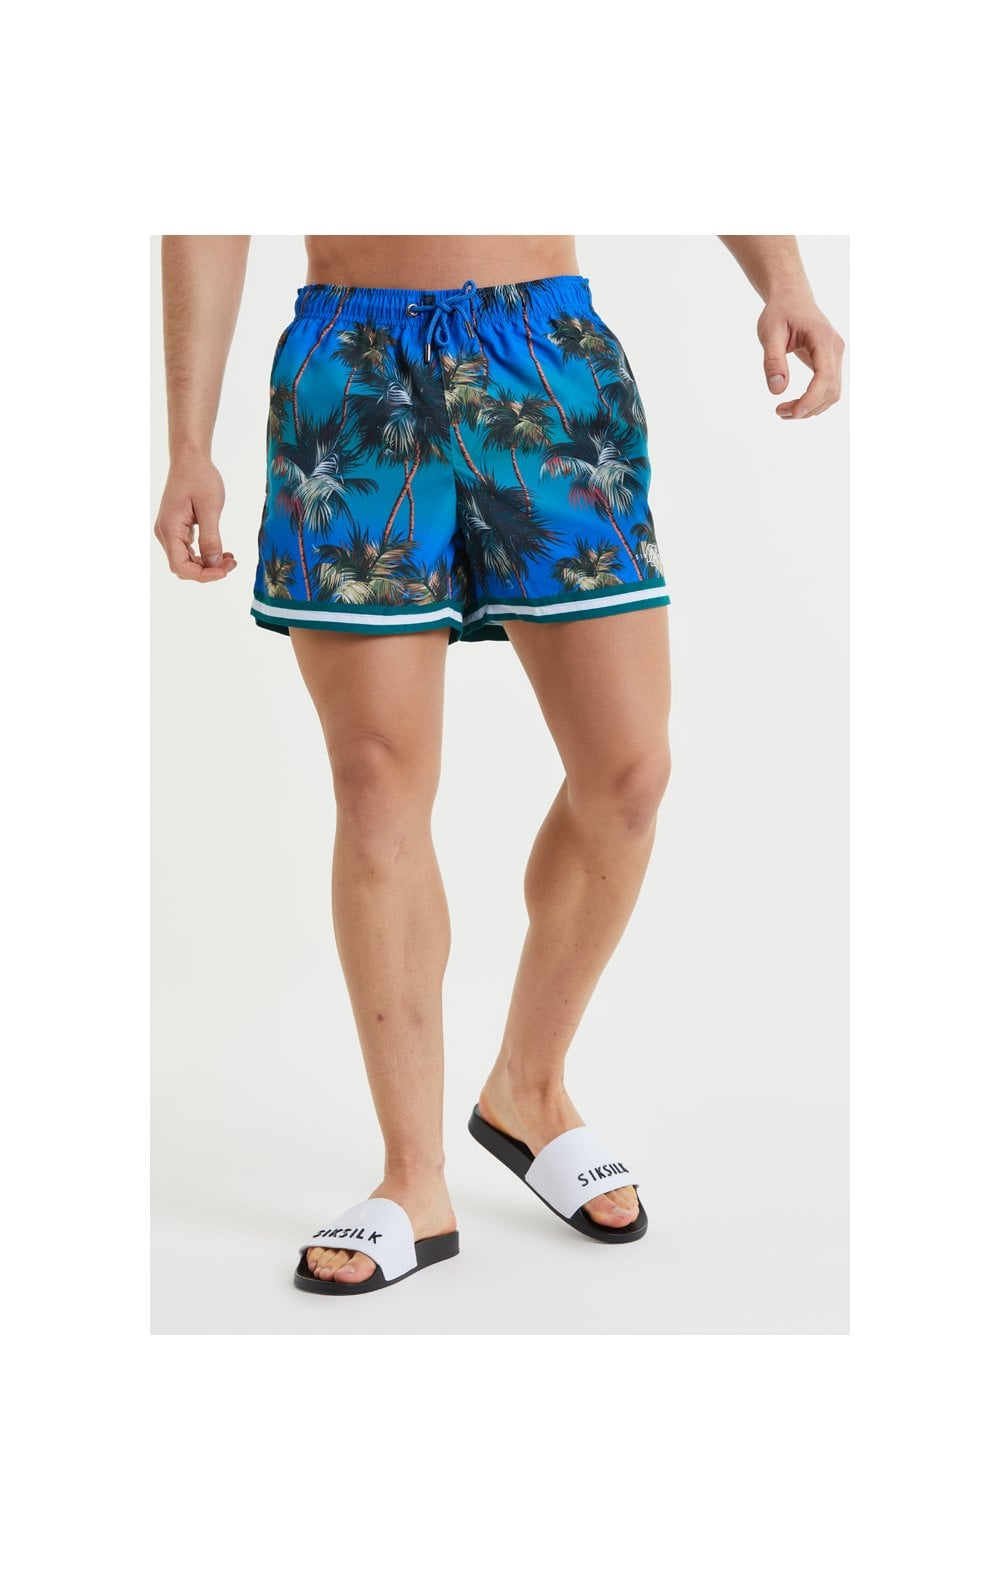 SikSilk Palm Swim Shorts - Blue & Green (1)